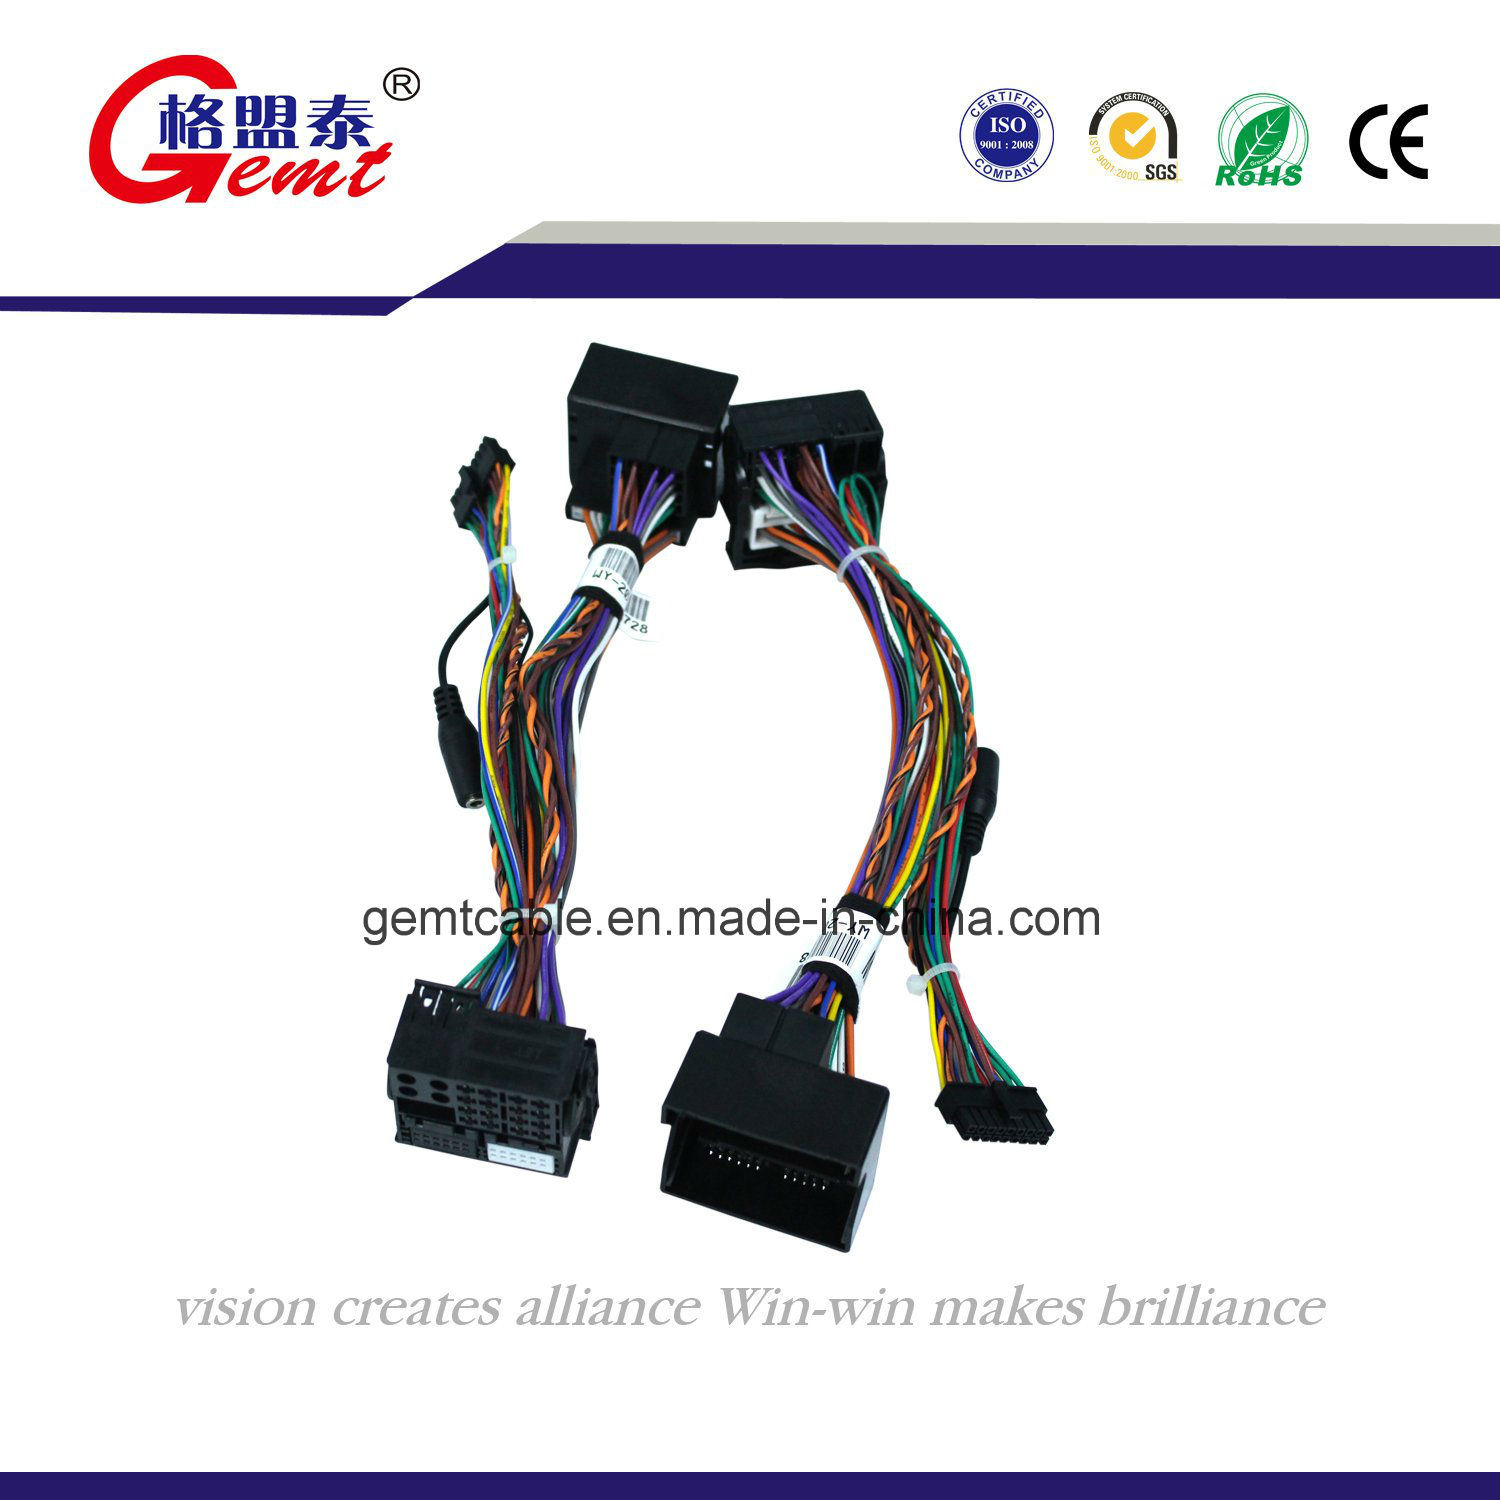 Wiring Harness Manufacturer Psa Diagram Manufacture China Peugeot Citroen Extension Cord Photos Cable Assembly Manufacturers